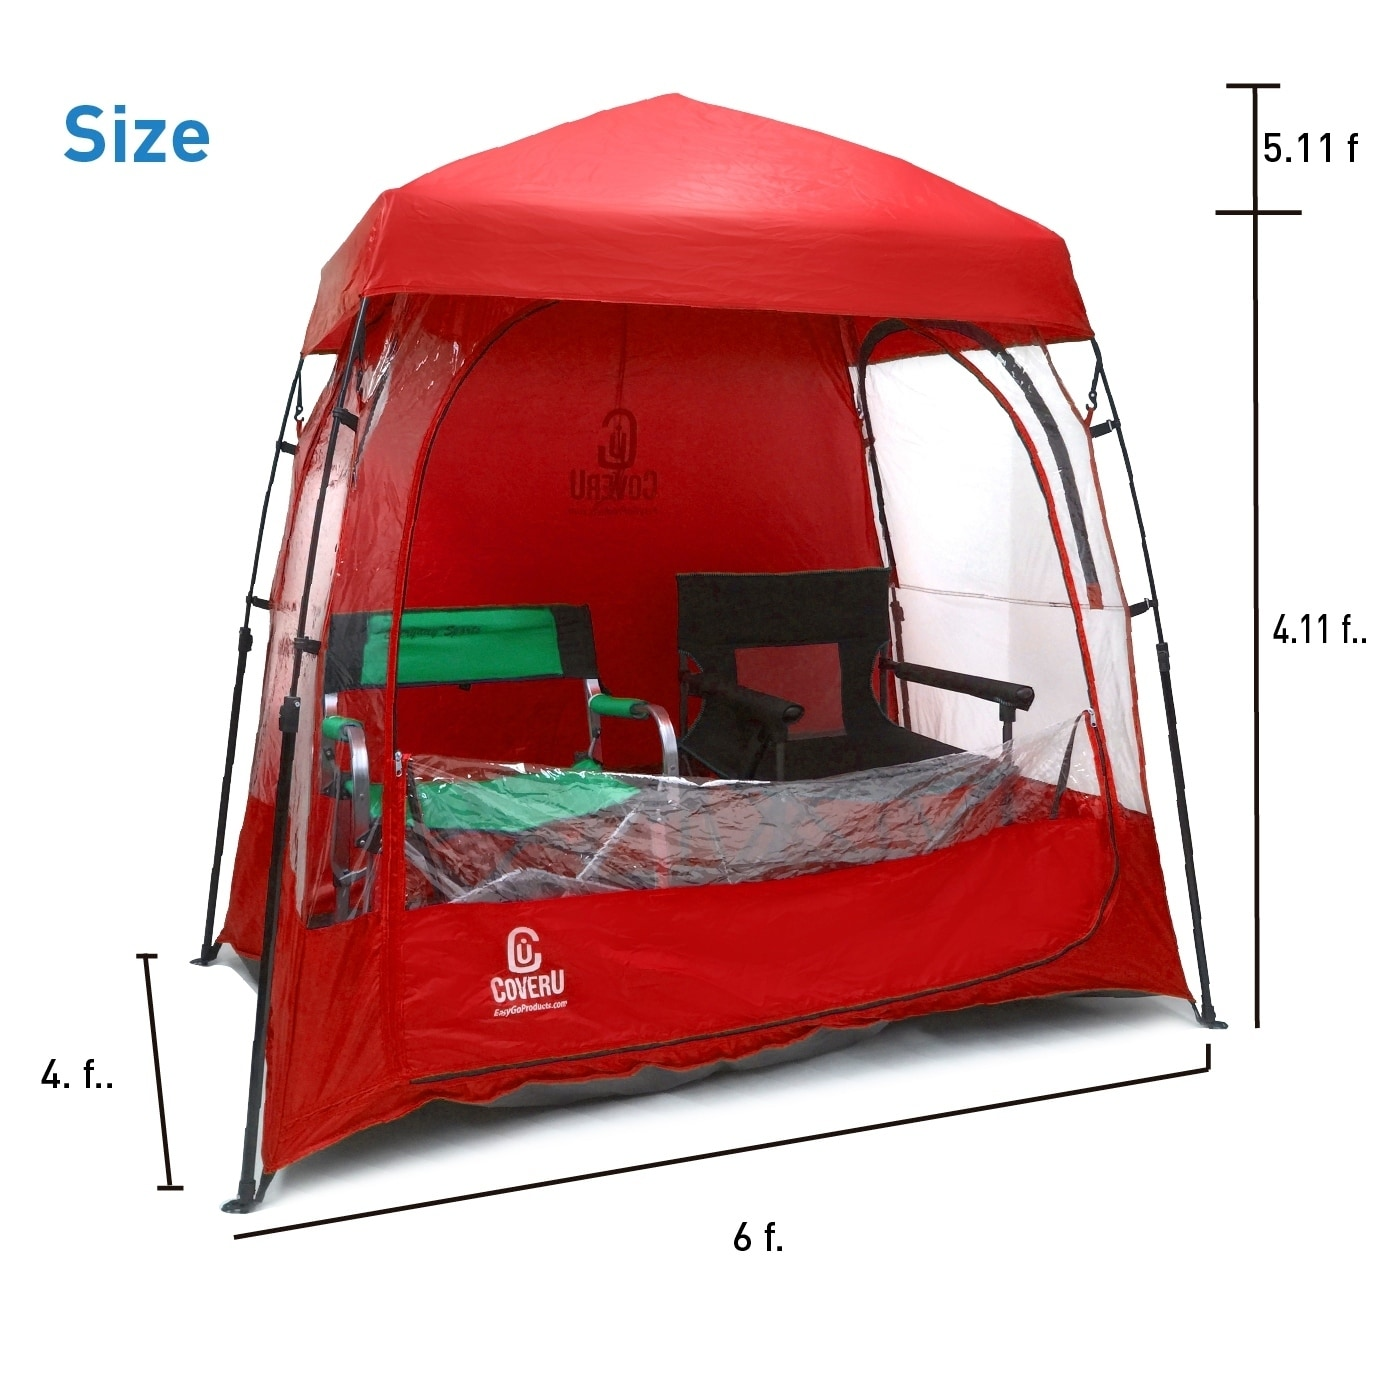 EasyGoProducts CoverU Sports Shelter Patents 2 Person Weather Tent Pod RED